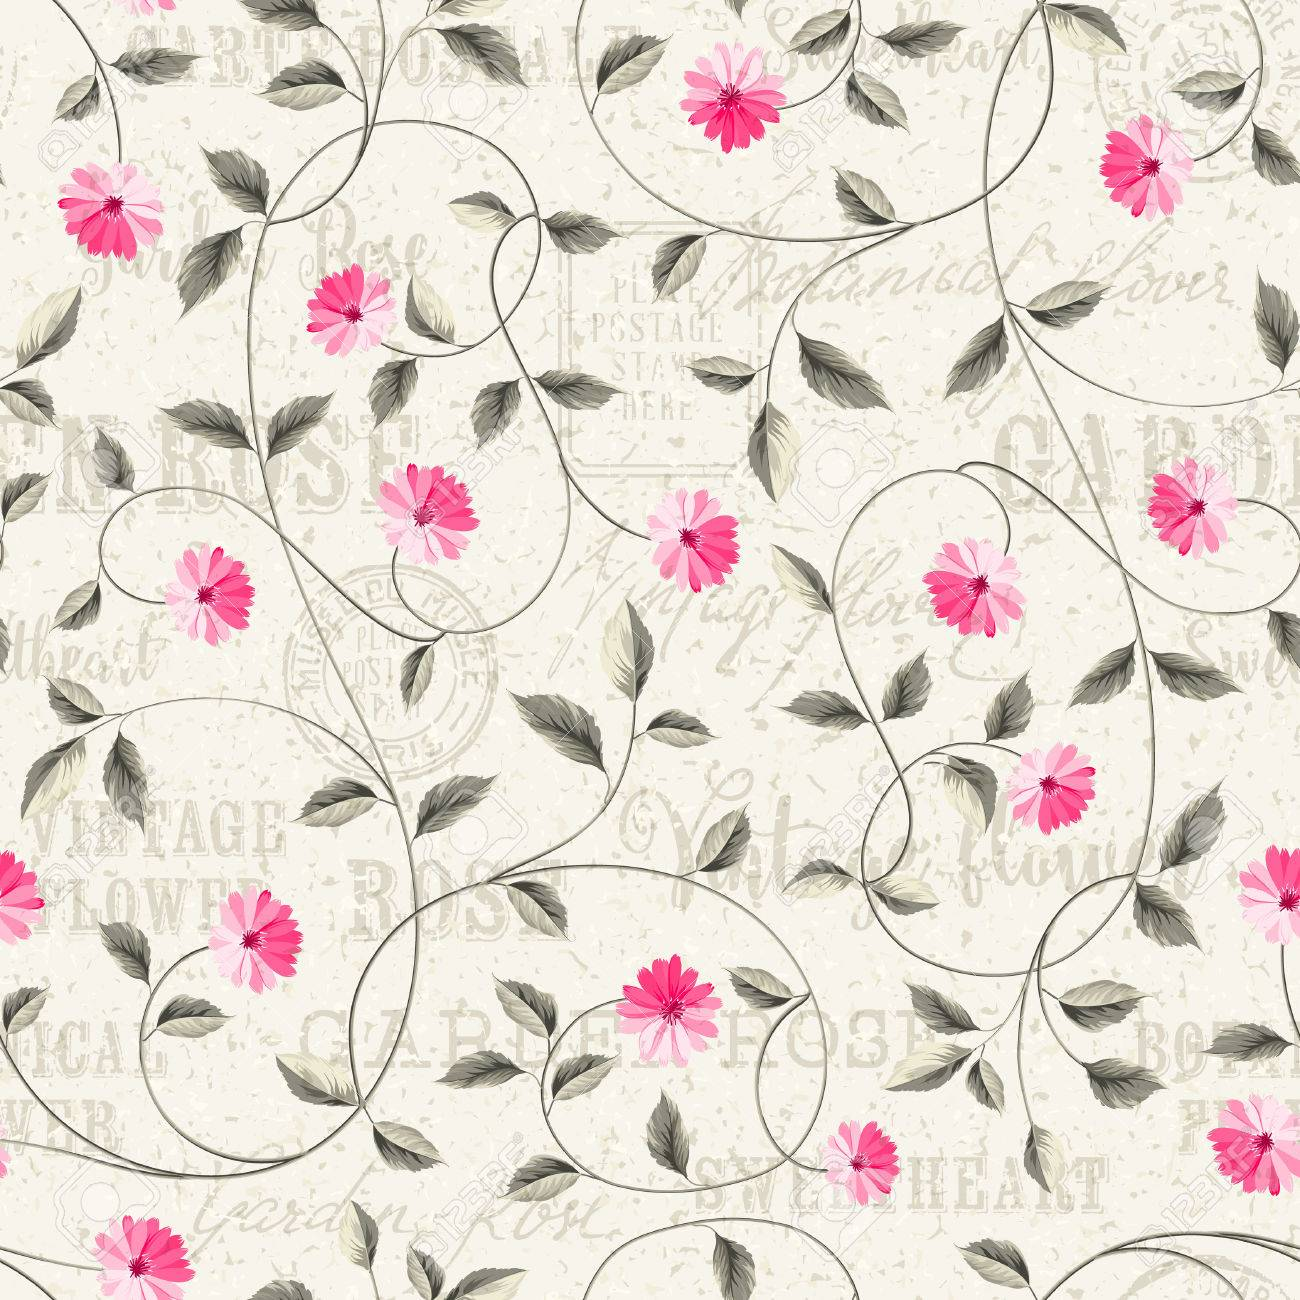 Wallpaper Texture Seamless Floral Background Shabby Chic Style